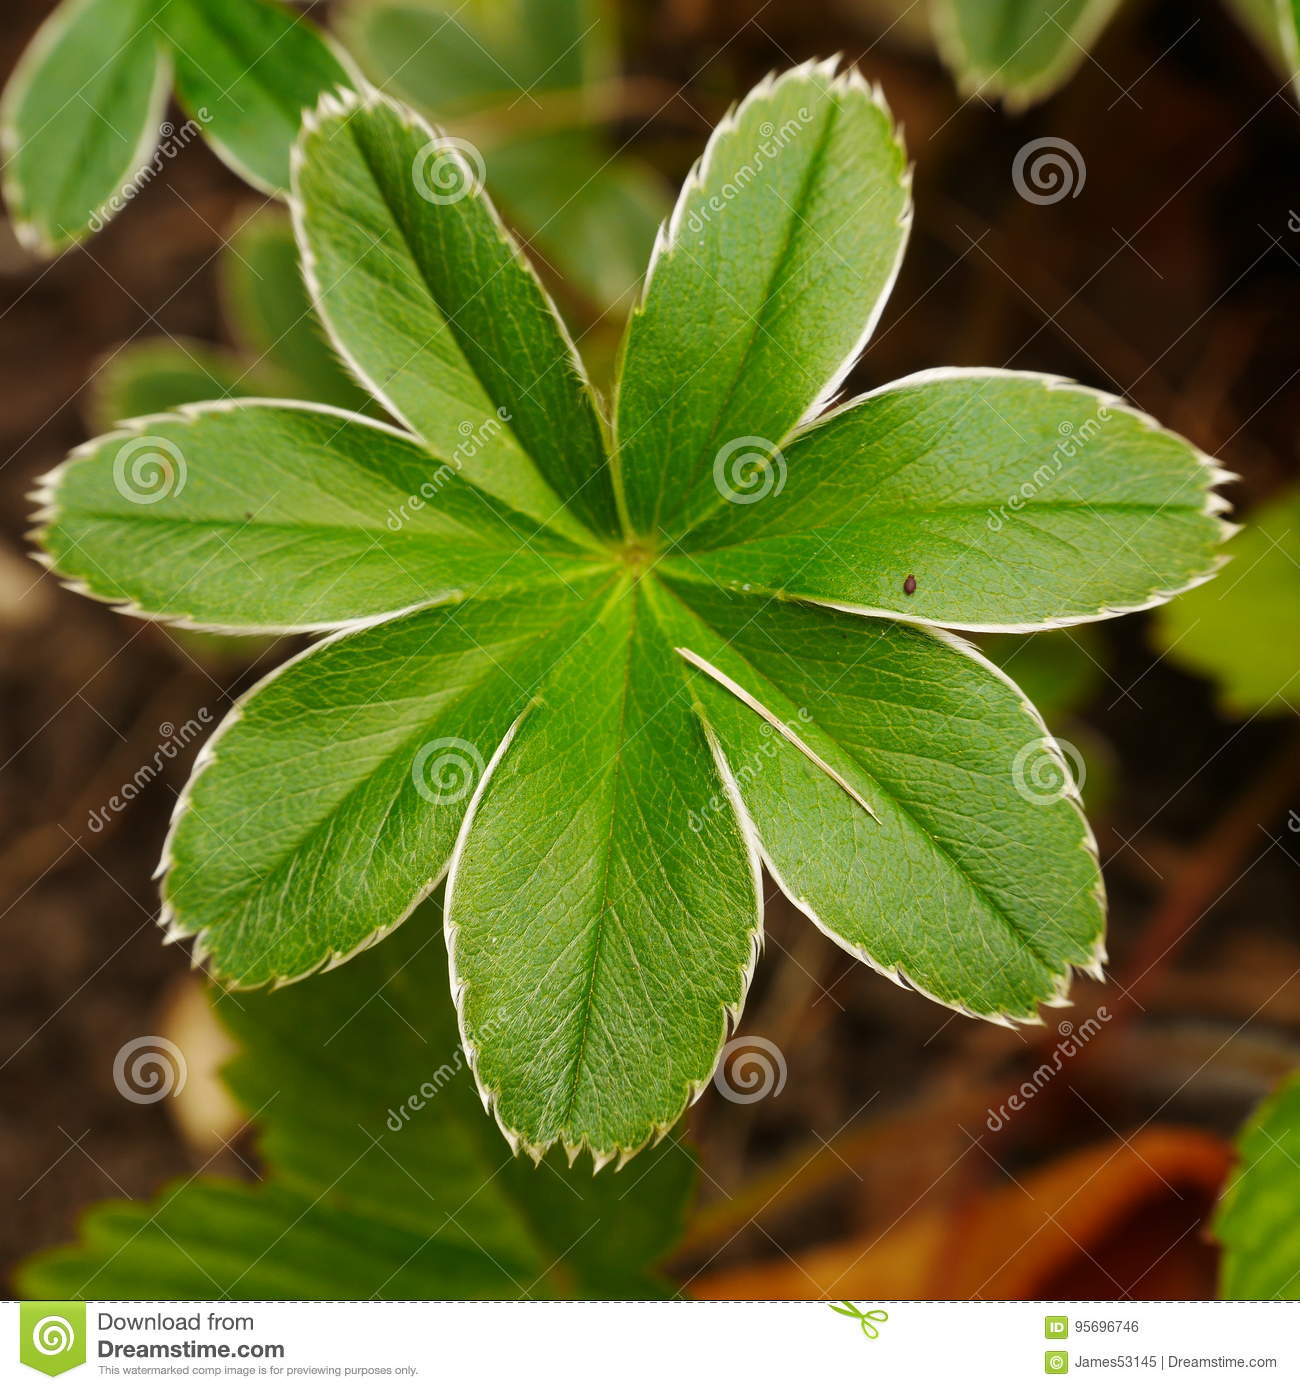 Alchemilla Alpina Stock Photo Image Of Mantle Leaf - Alchemilla alpina